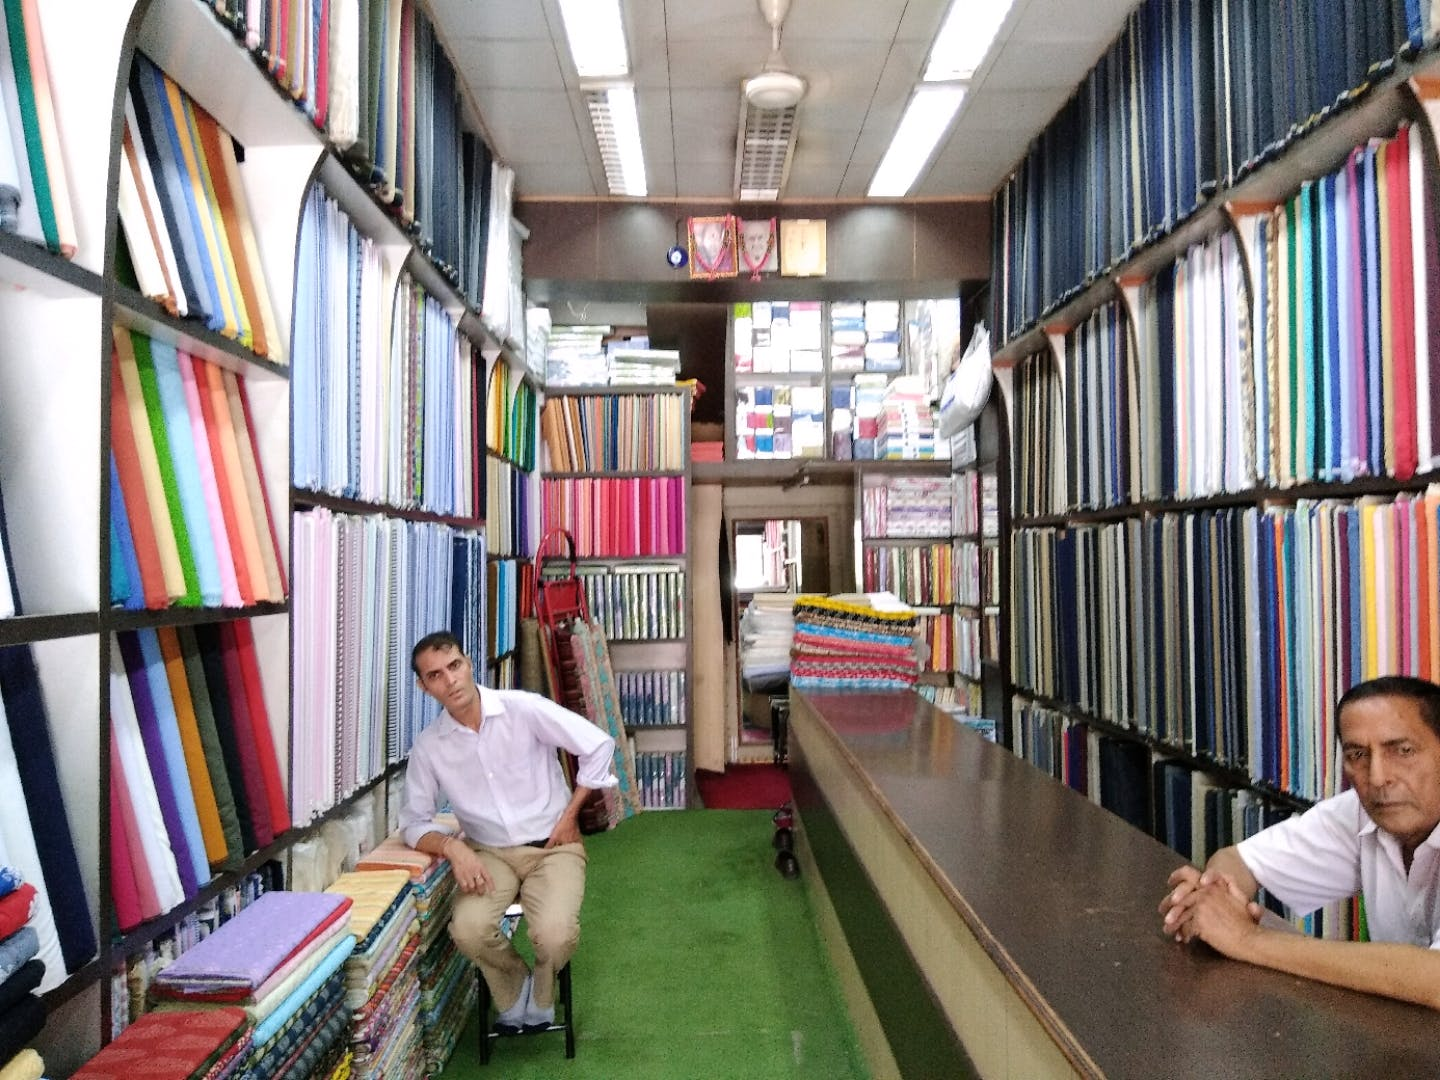 Library,Public library,Building,Bookselling,Bookcase,Shelving,Organization